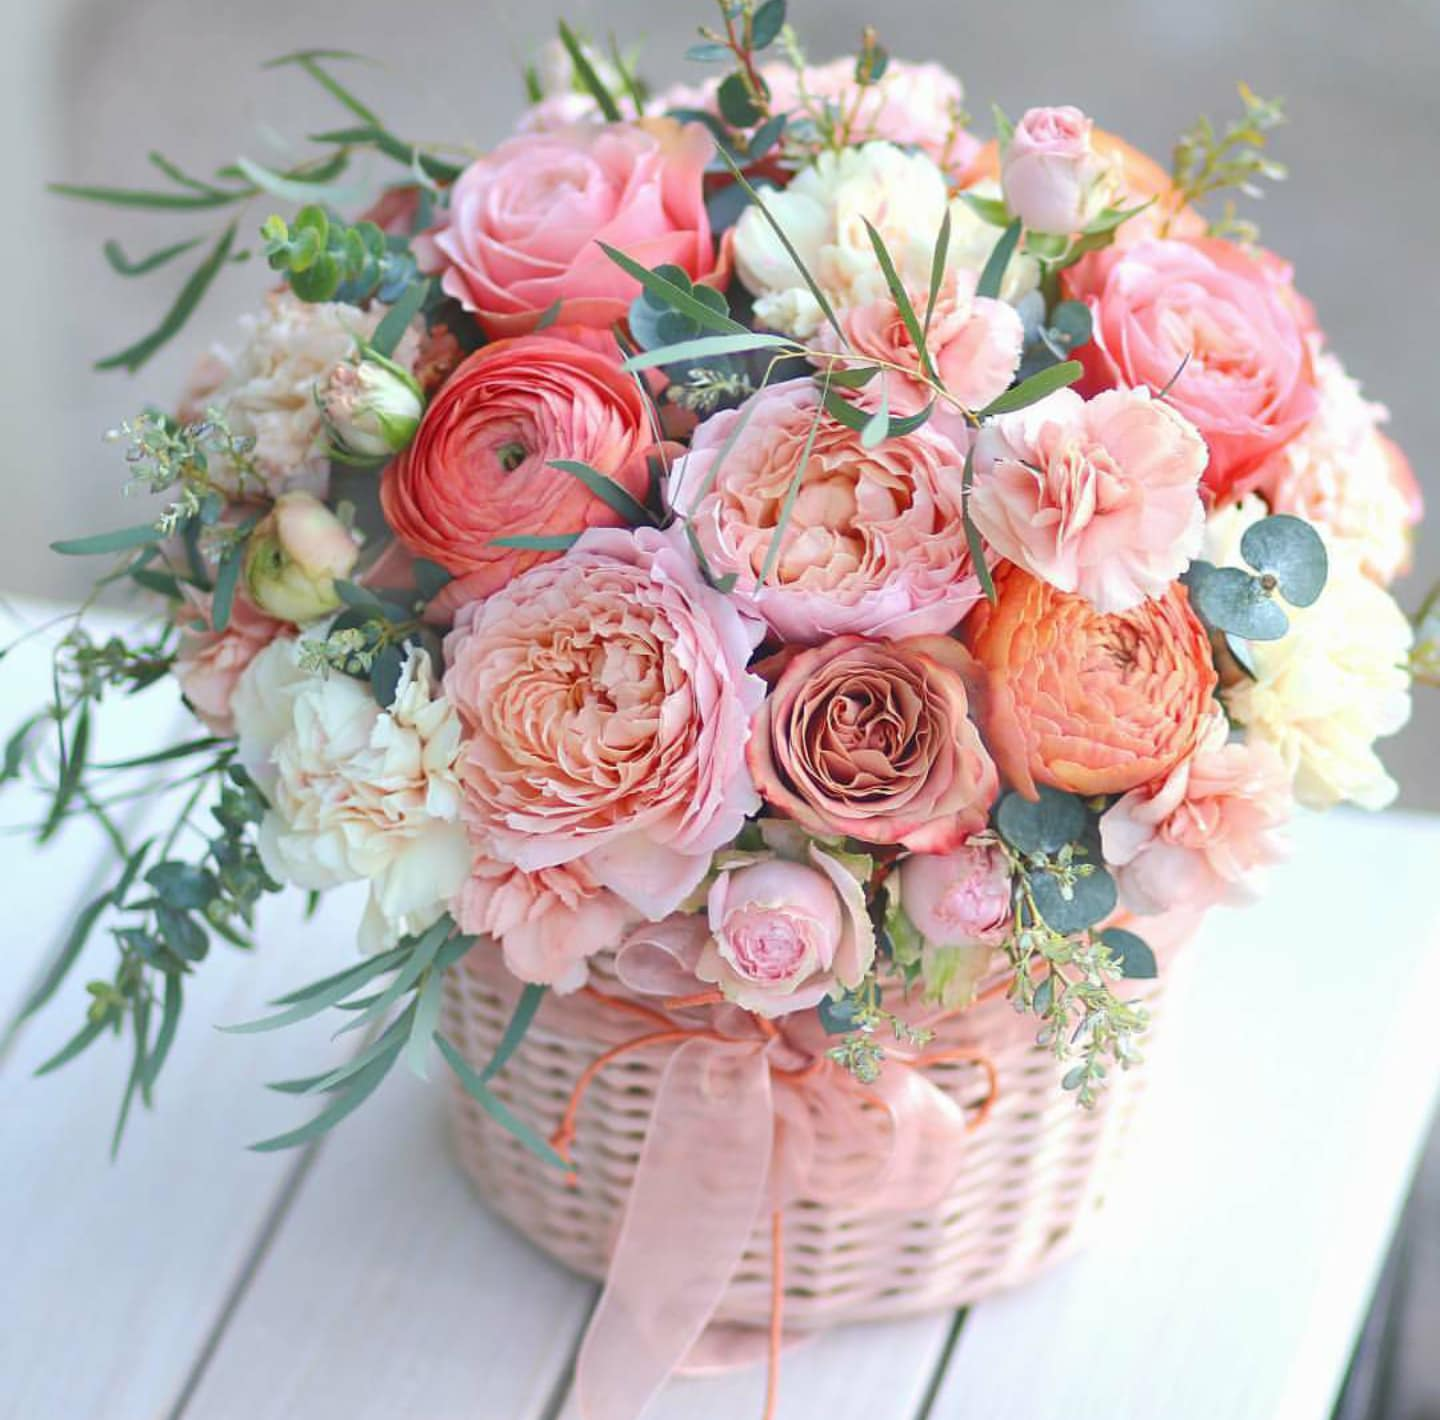 Spring Garden Basket With Organic Roses by Venetian Flowers